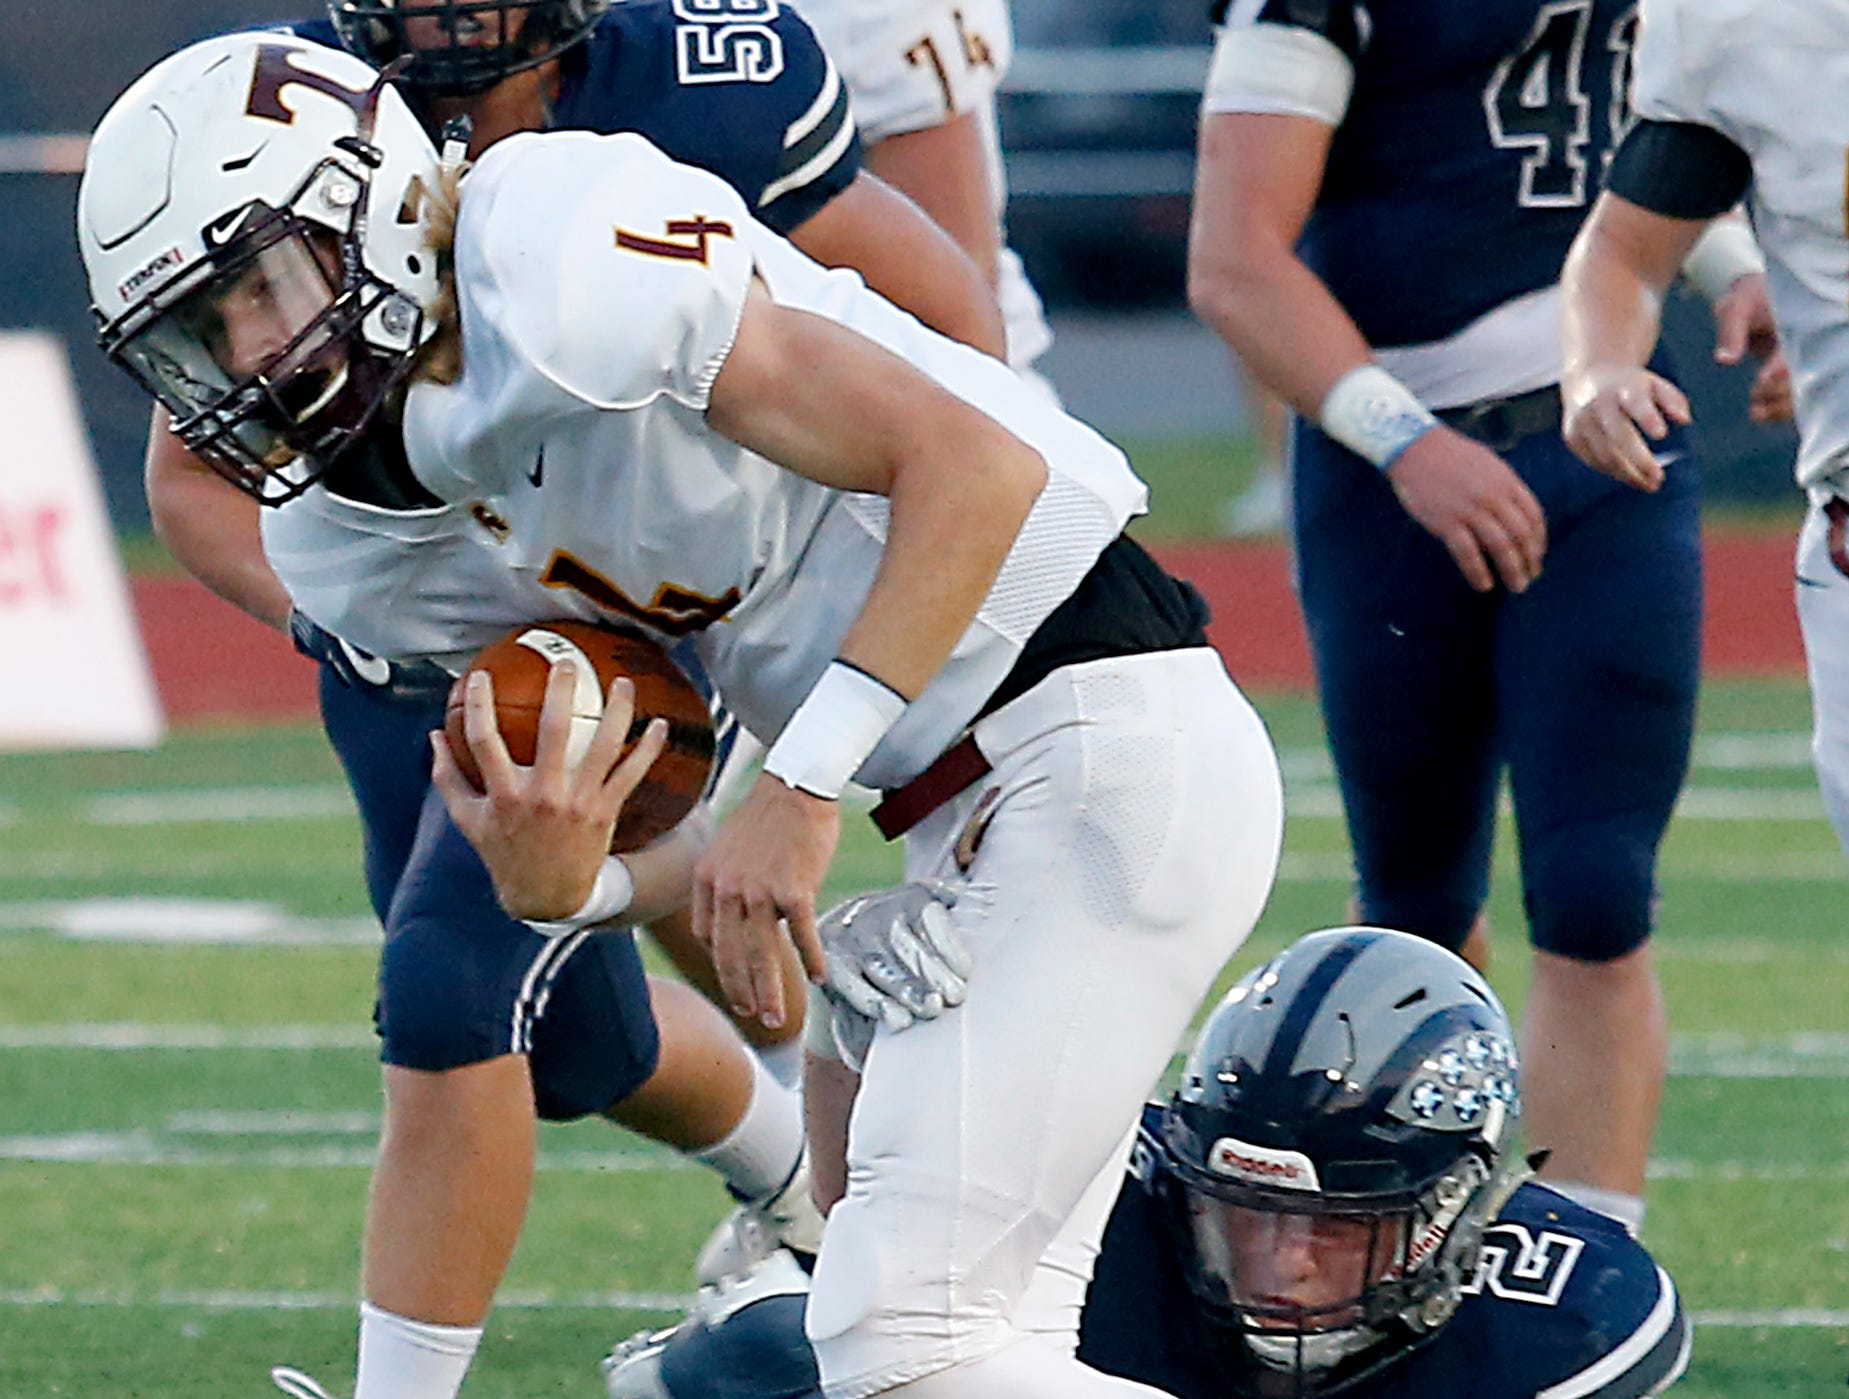 Turpin quarterback Justin Silverstein is brought down by West Clermont's Matt Lewis during their 2018 Skyline Chili Crosstown Showdown at West Clermont Friday, Sept. 14, 2018.